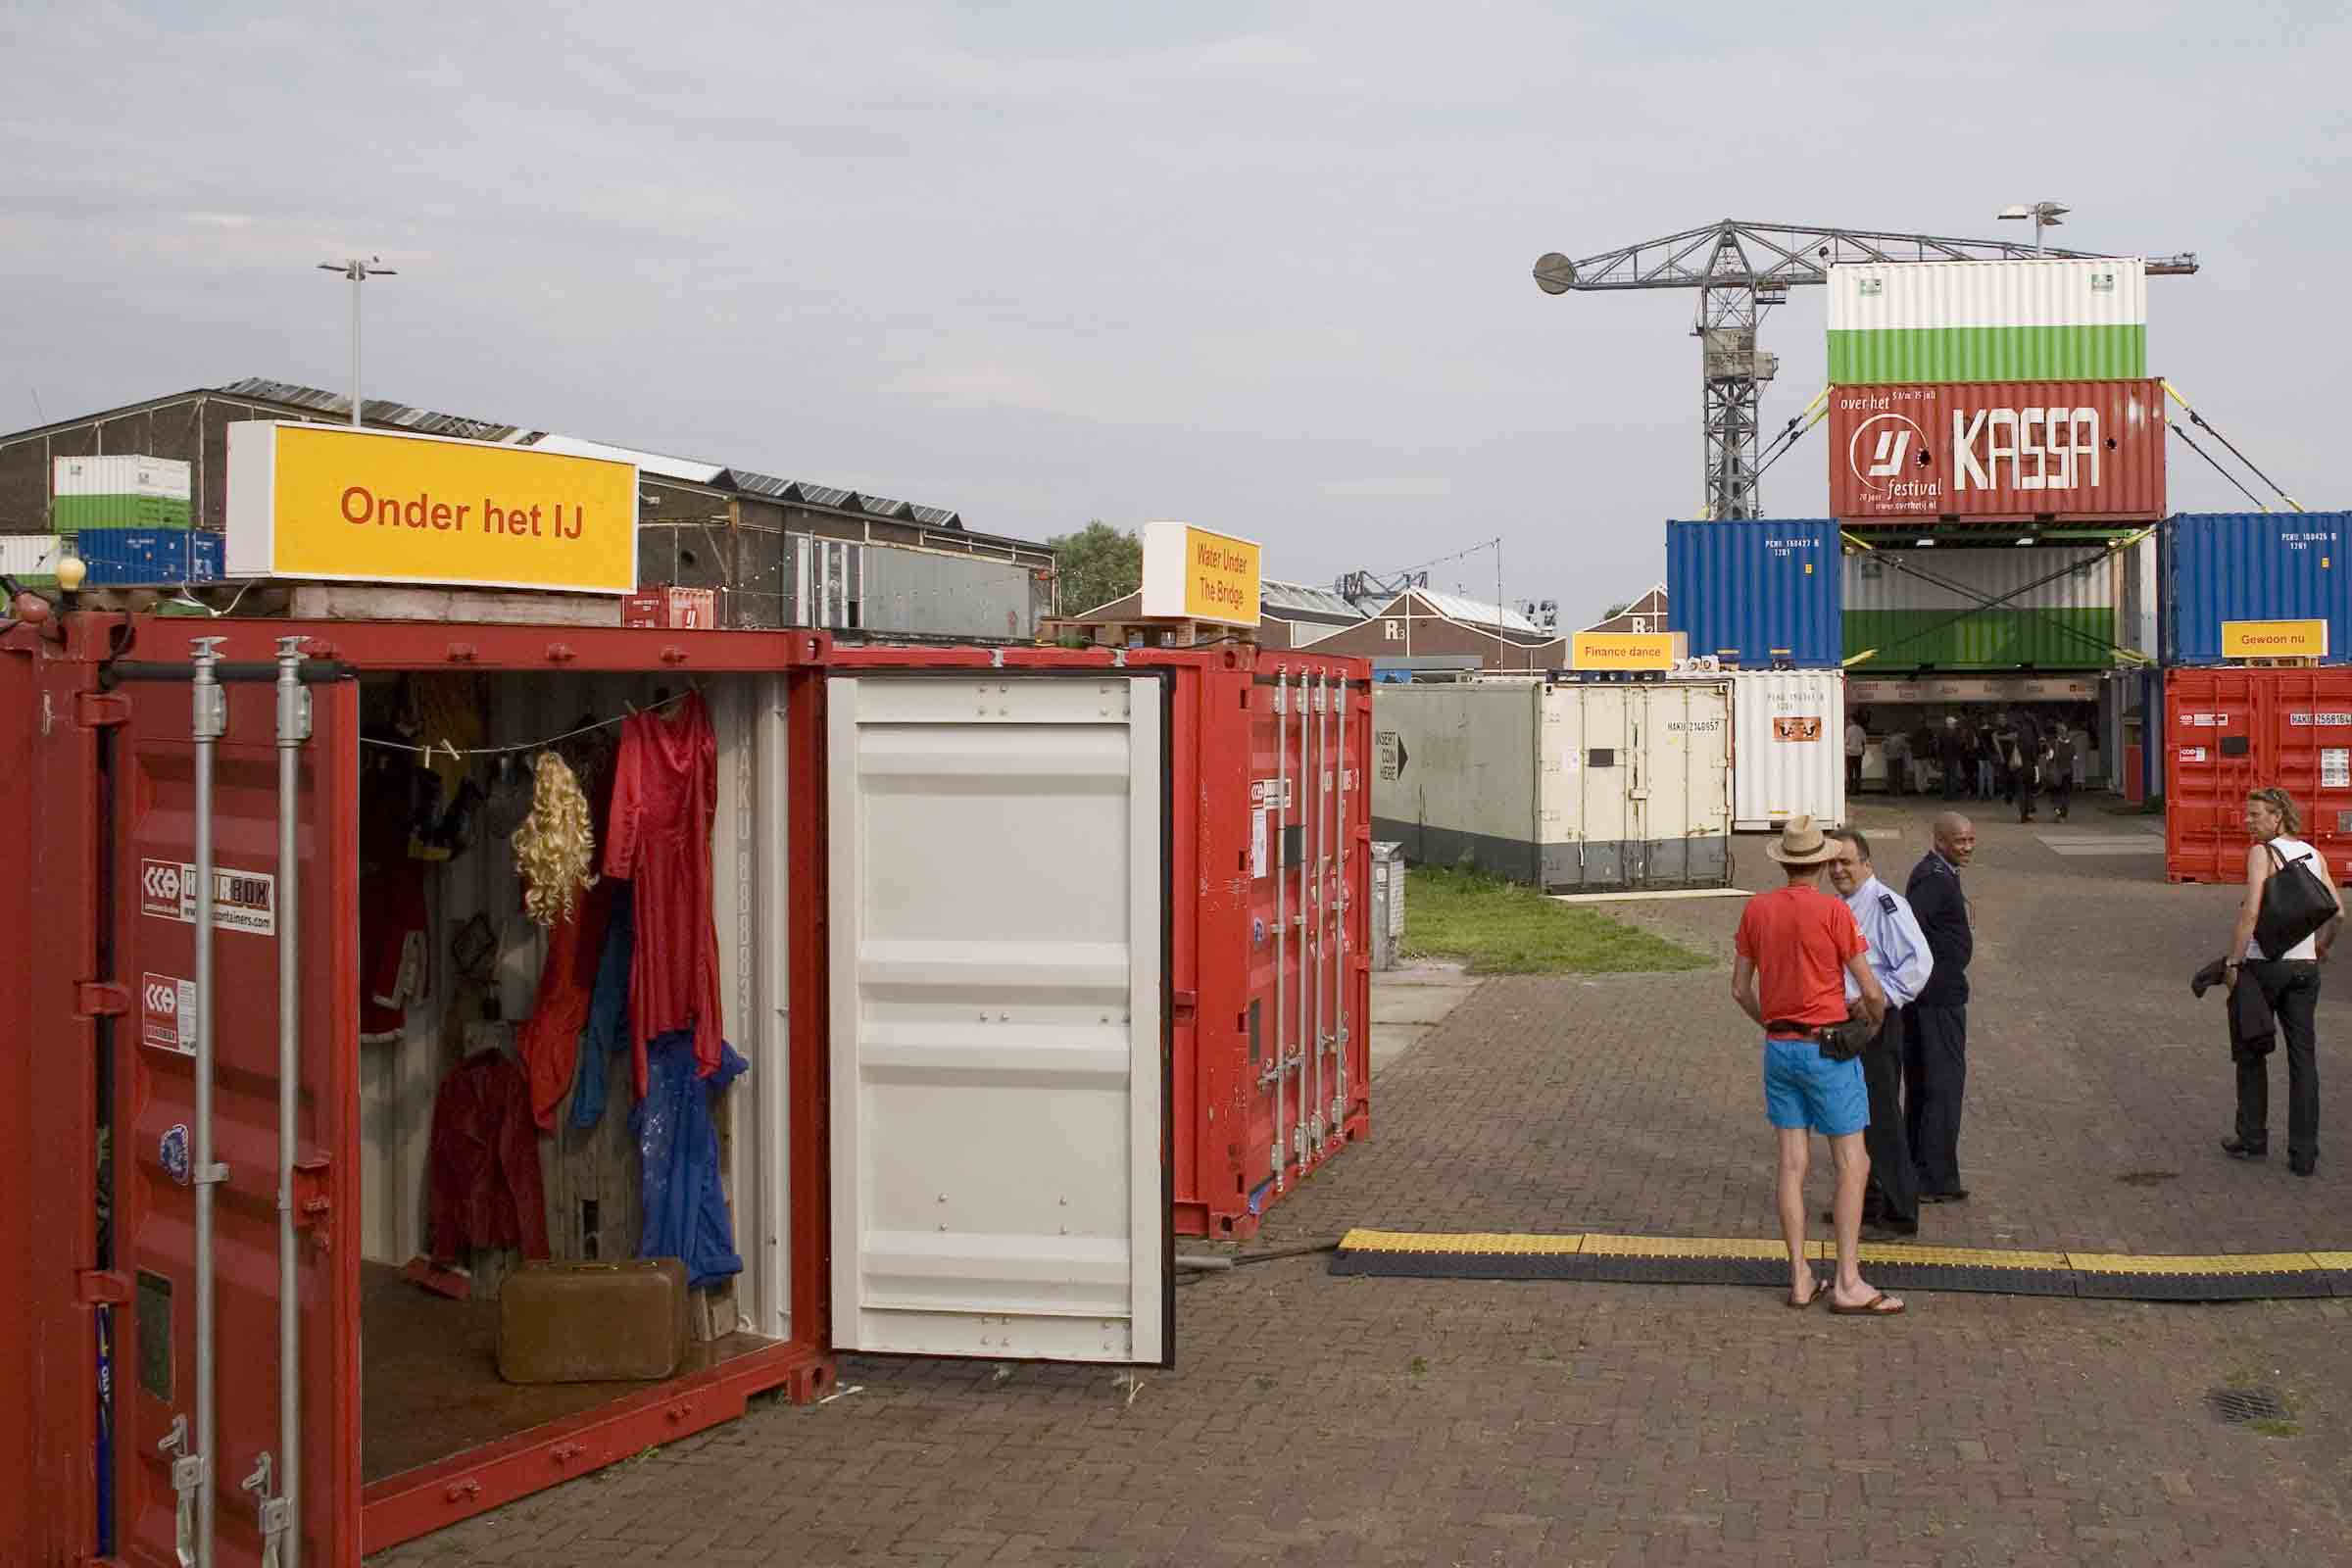 BETA office for architecture and the city Amsterdam NDSM temporary shipping container city village